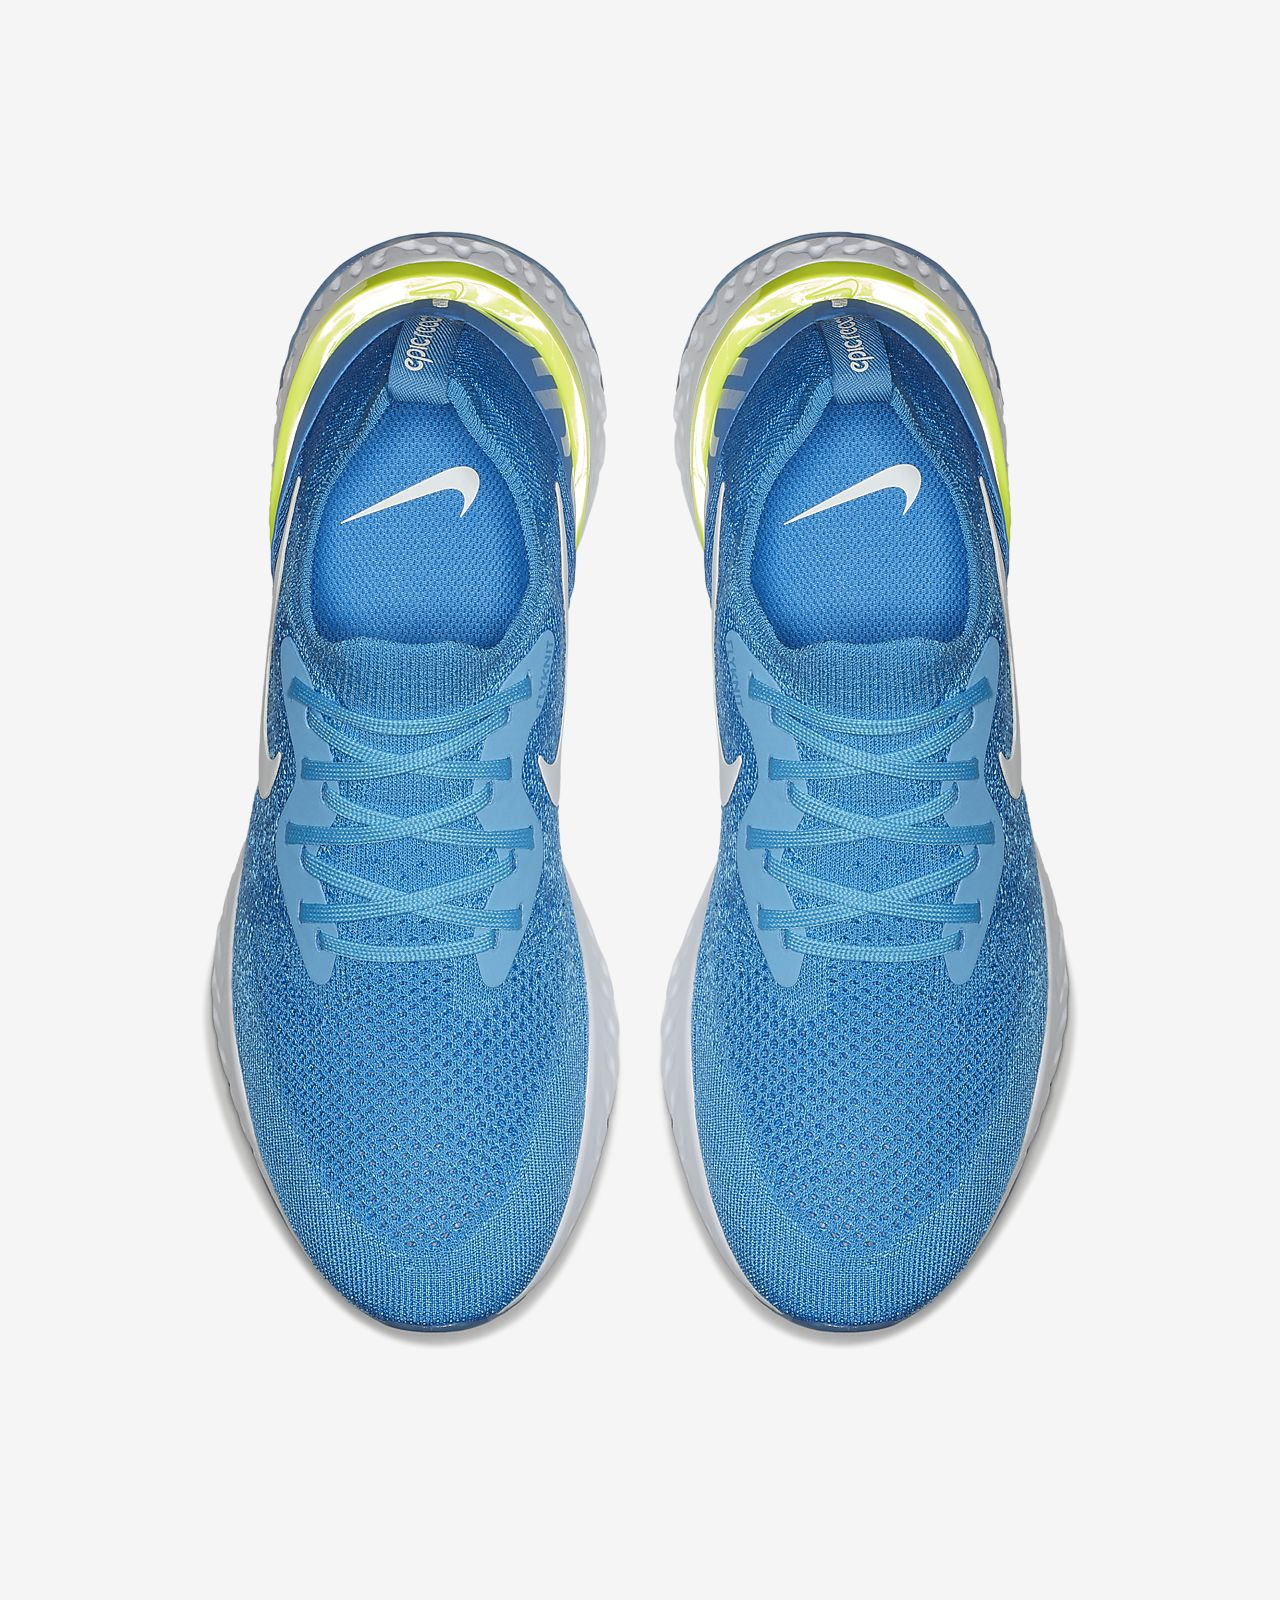 0caee5222e776 Nike Epic React Flyknit 1 Men s Running Shoe. Nike.com